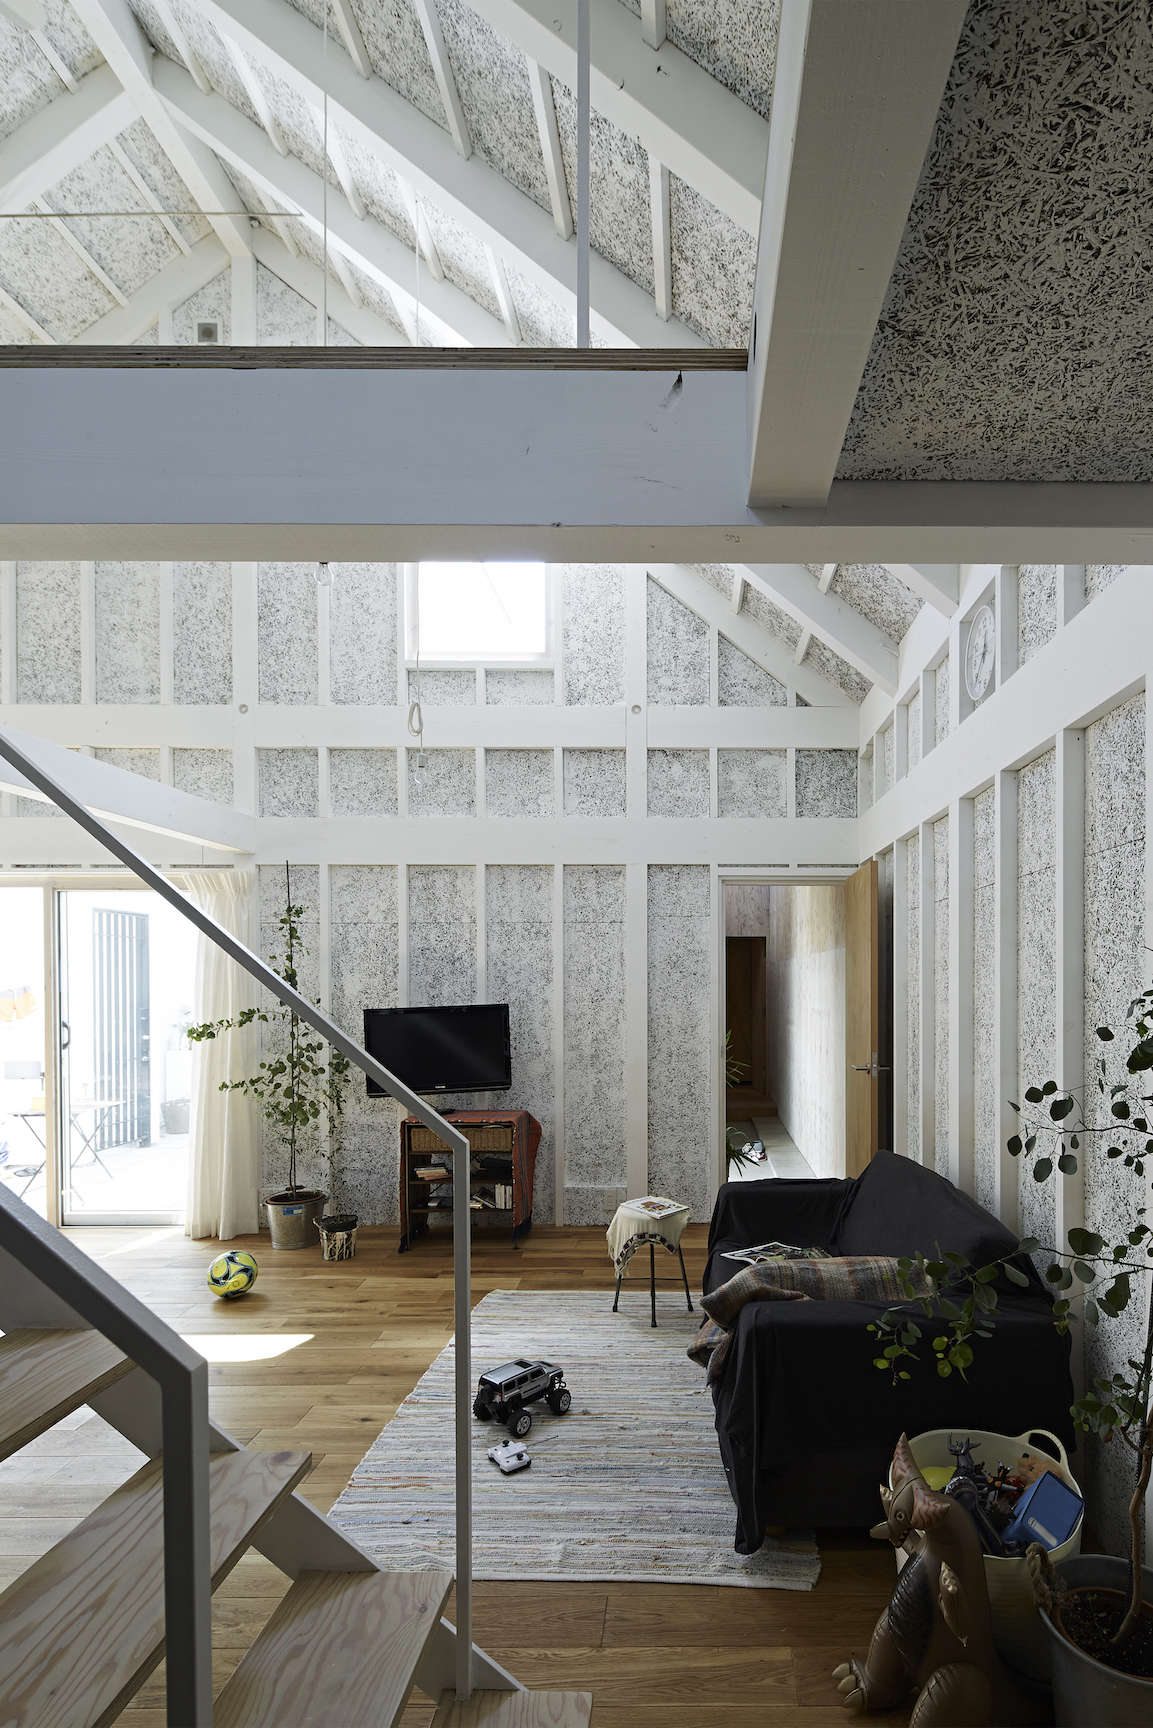 the living area at sabi, a surfers' house in chiba, japan, designed by no. 555  16